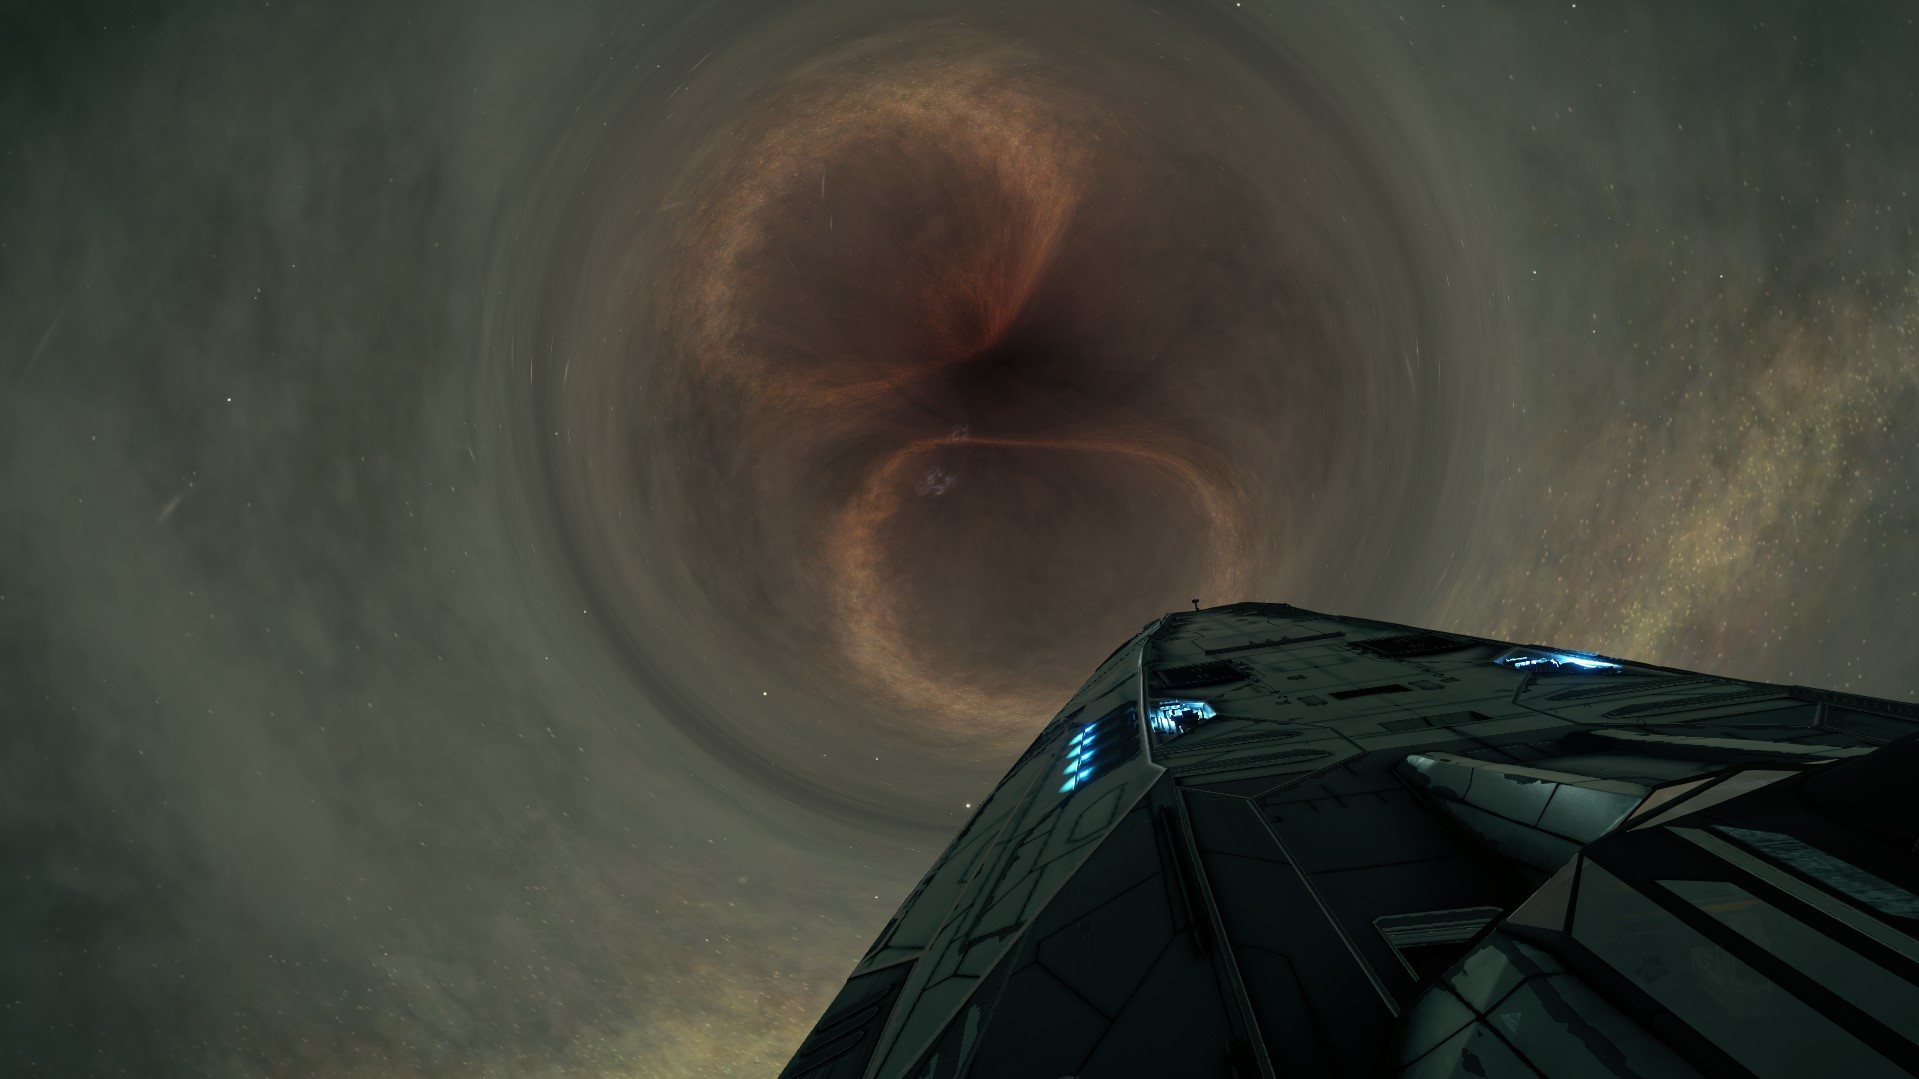 25,000 light years and 800 jumps later, finally at Sag A*